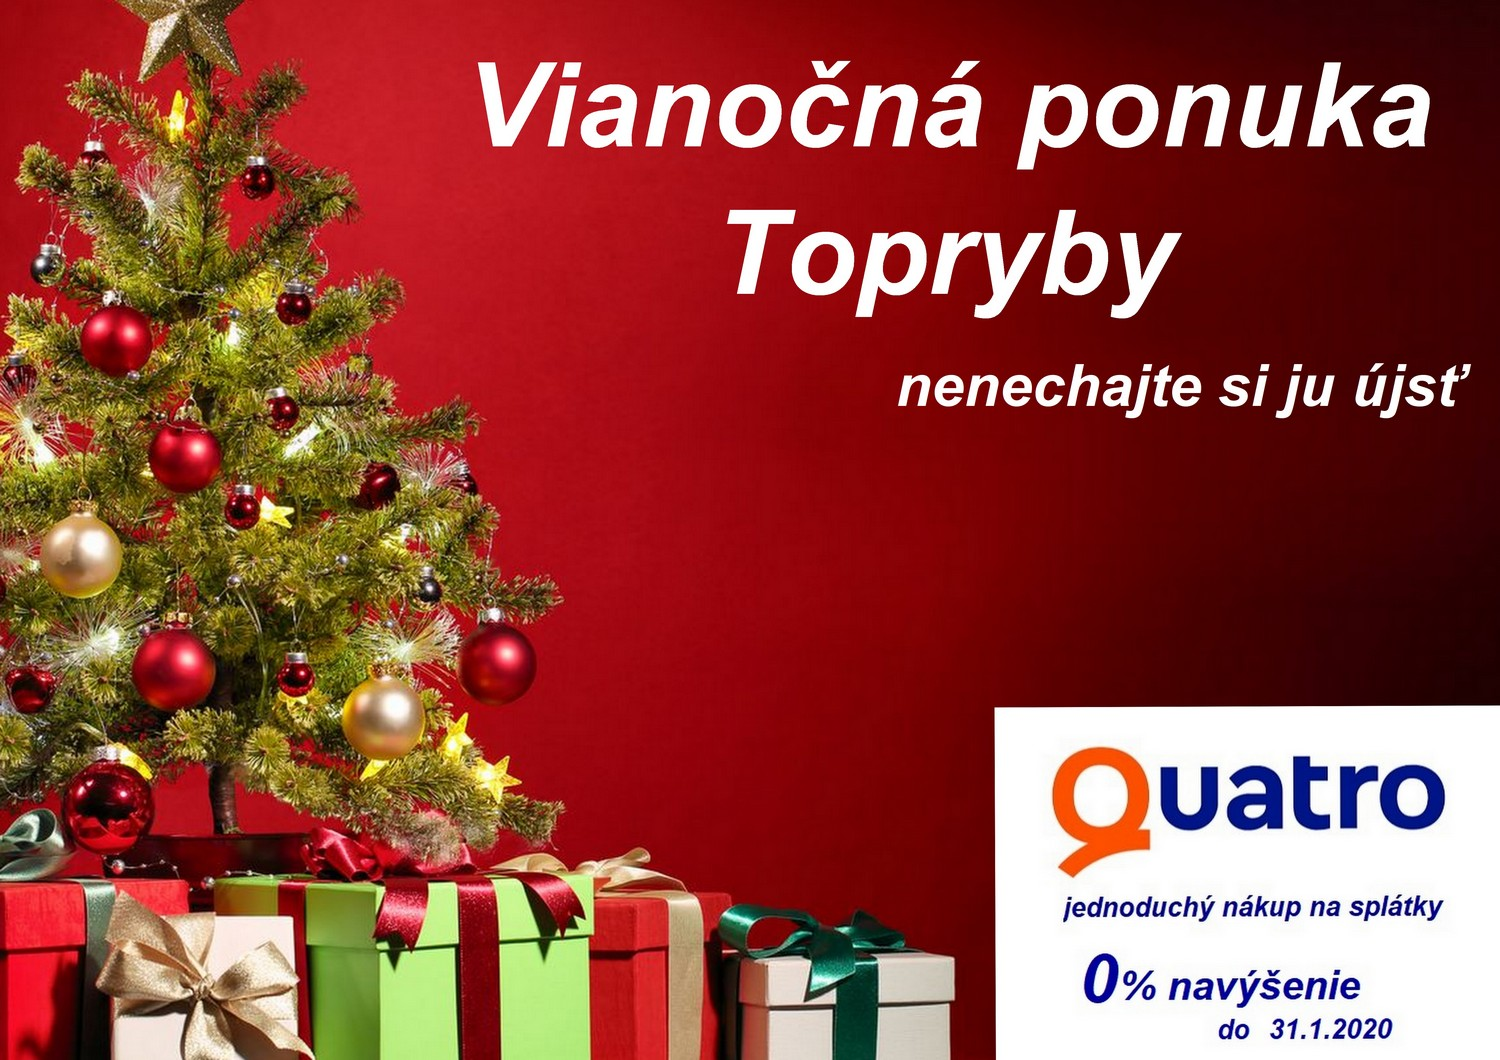 vianoce - topryby.sk